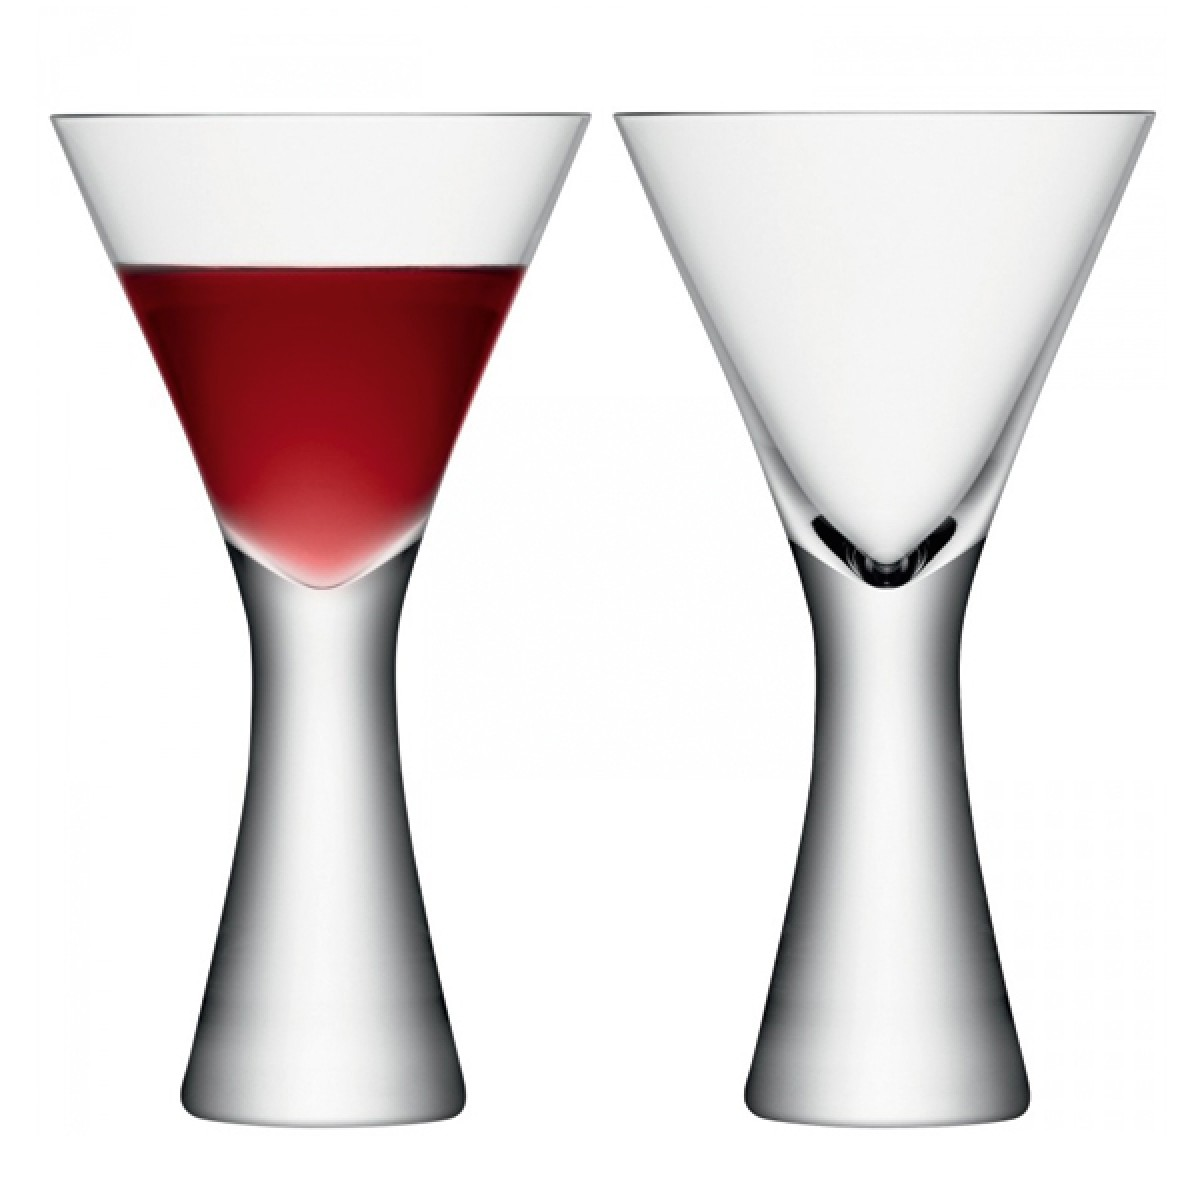 lsa moya champagne flutes  set of   modern champagne glasses - lsa moya wine glasses  set of   modern designer wine glasses